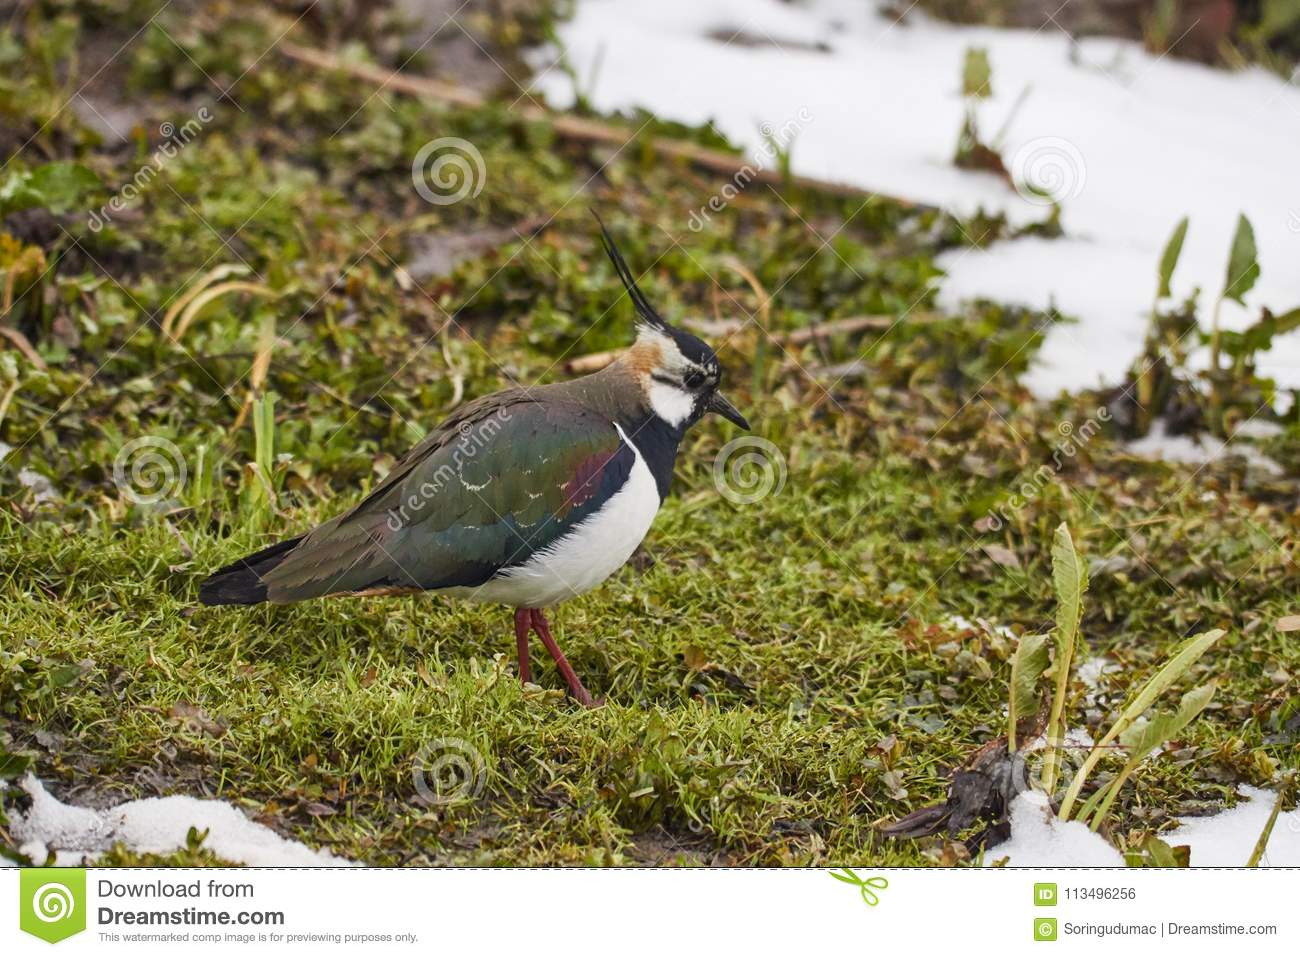 Northern lapwing or Vanellus vanellus in gras with snow.